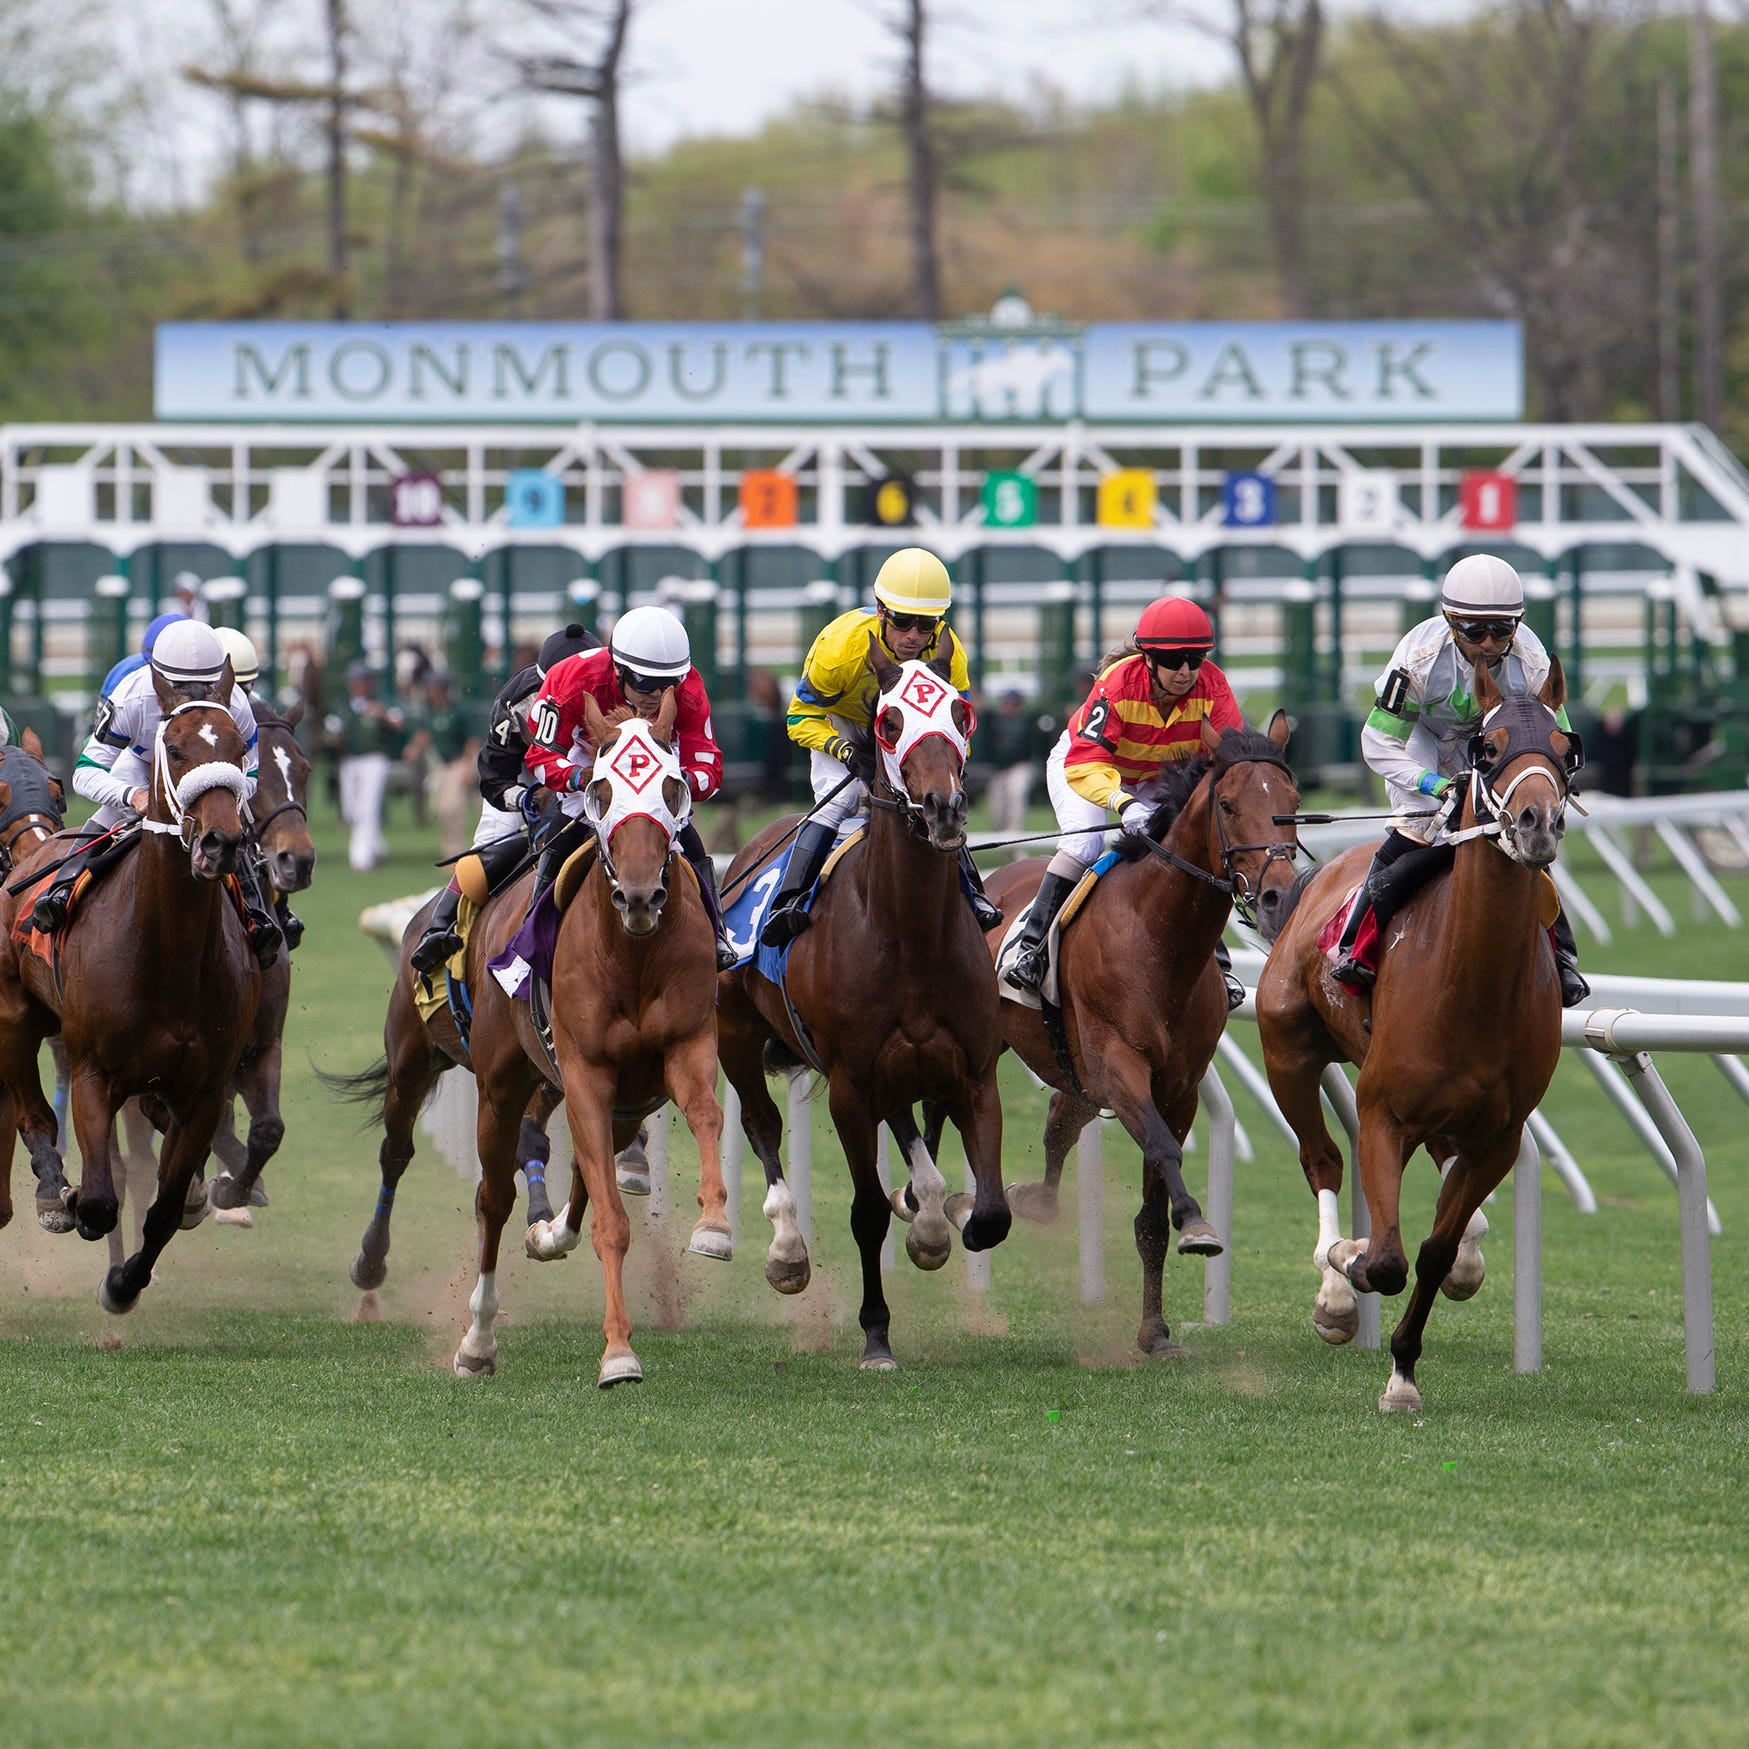 Monmouth Park: $20 million racing subsidy has key lawmakers' support